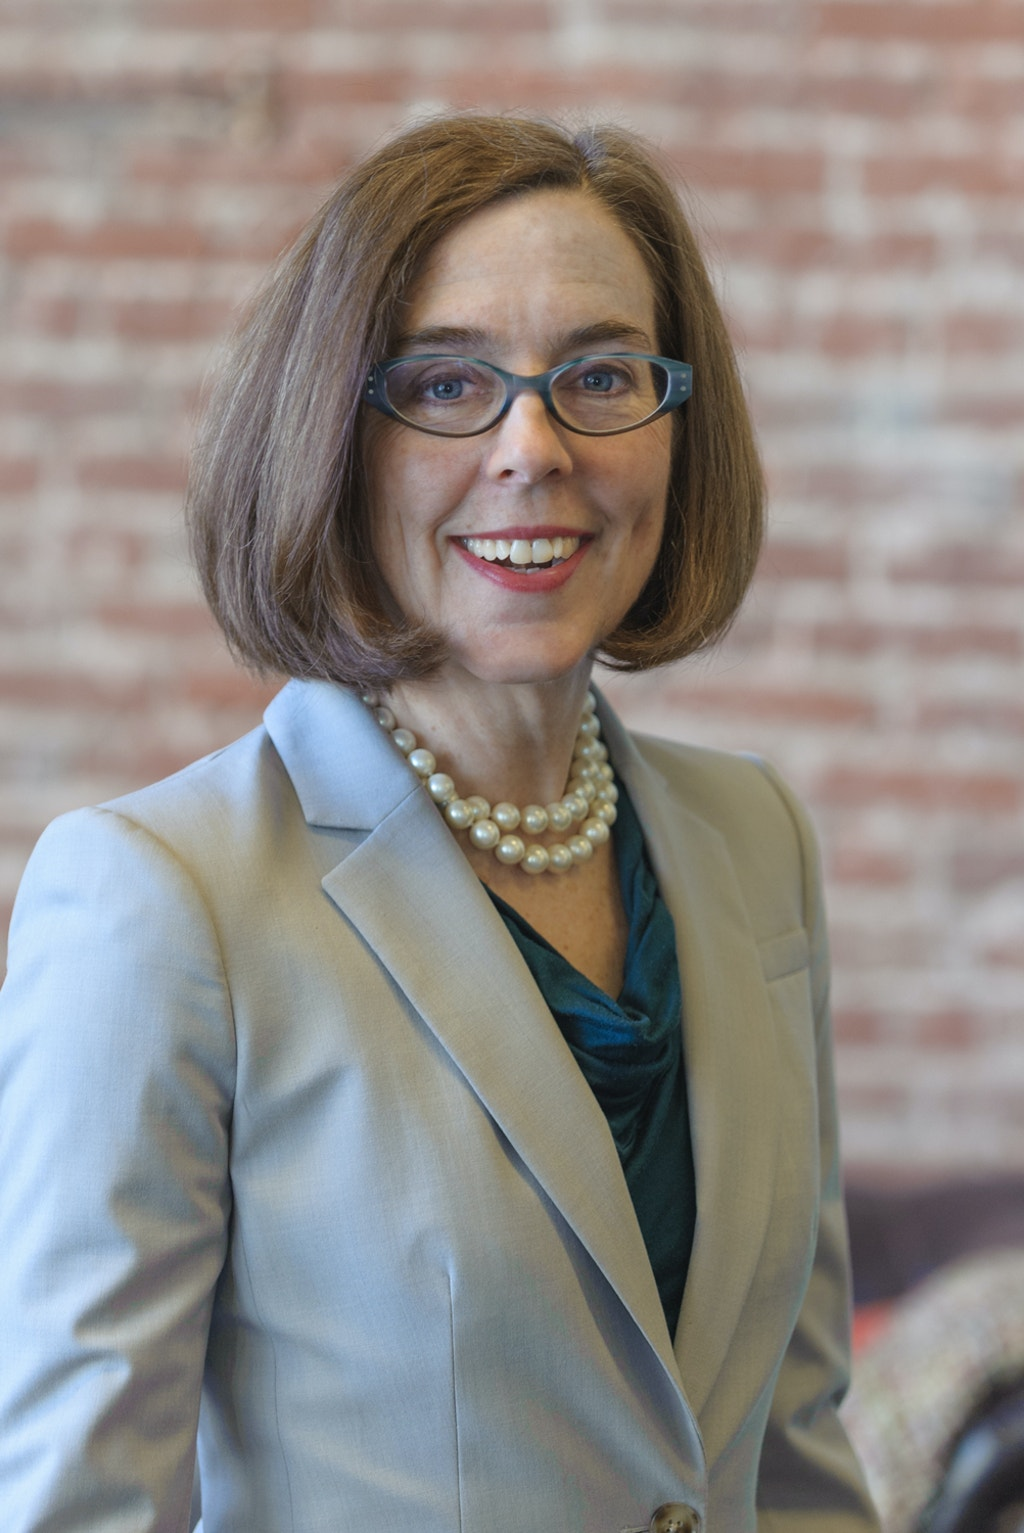 Oregon's New Governor Plans to Continue Death Penalty Moratorium